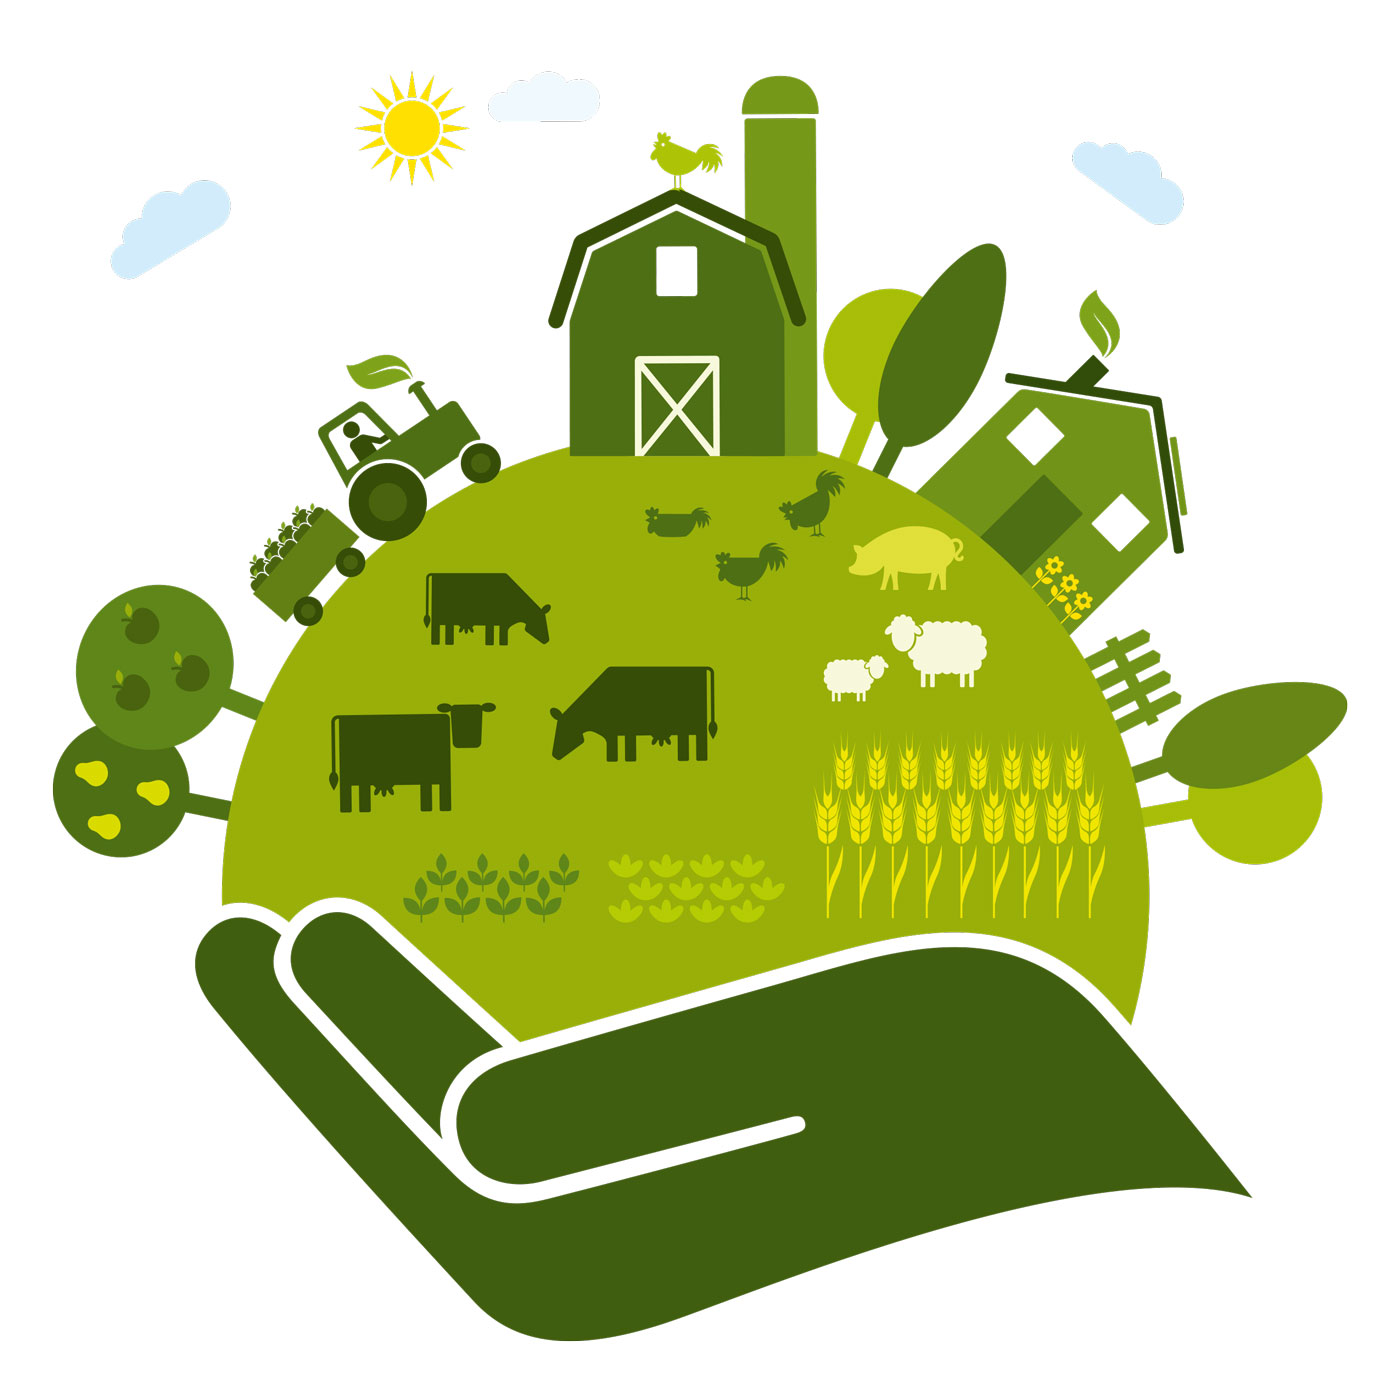 Food for thought the. Agriculture clipart sustainable agriculture